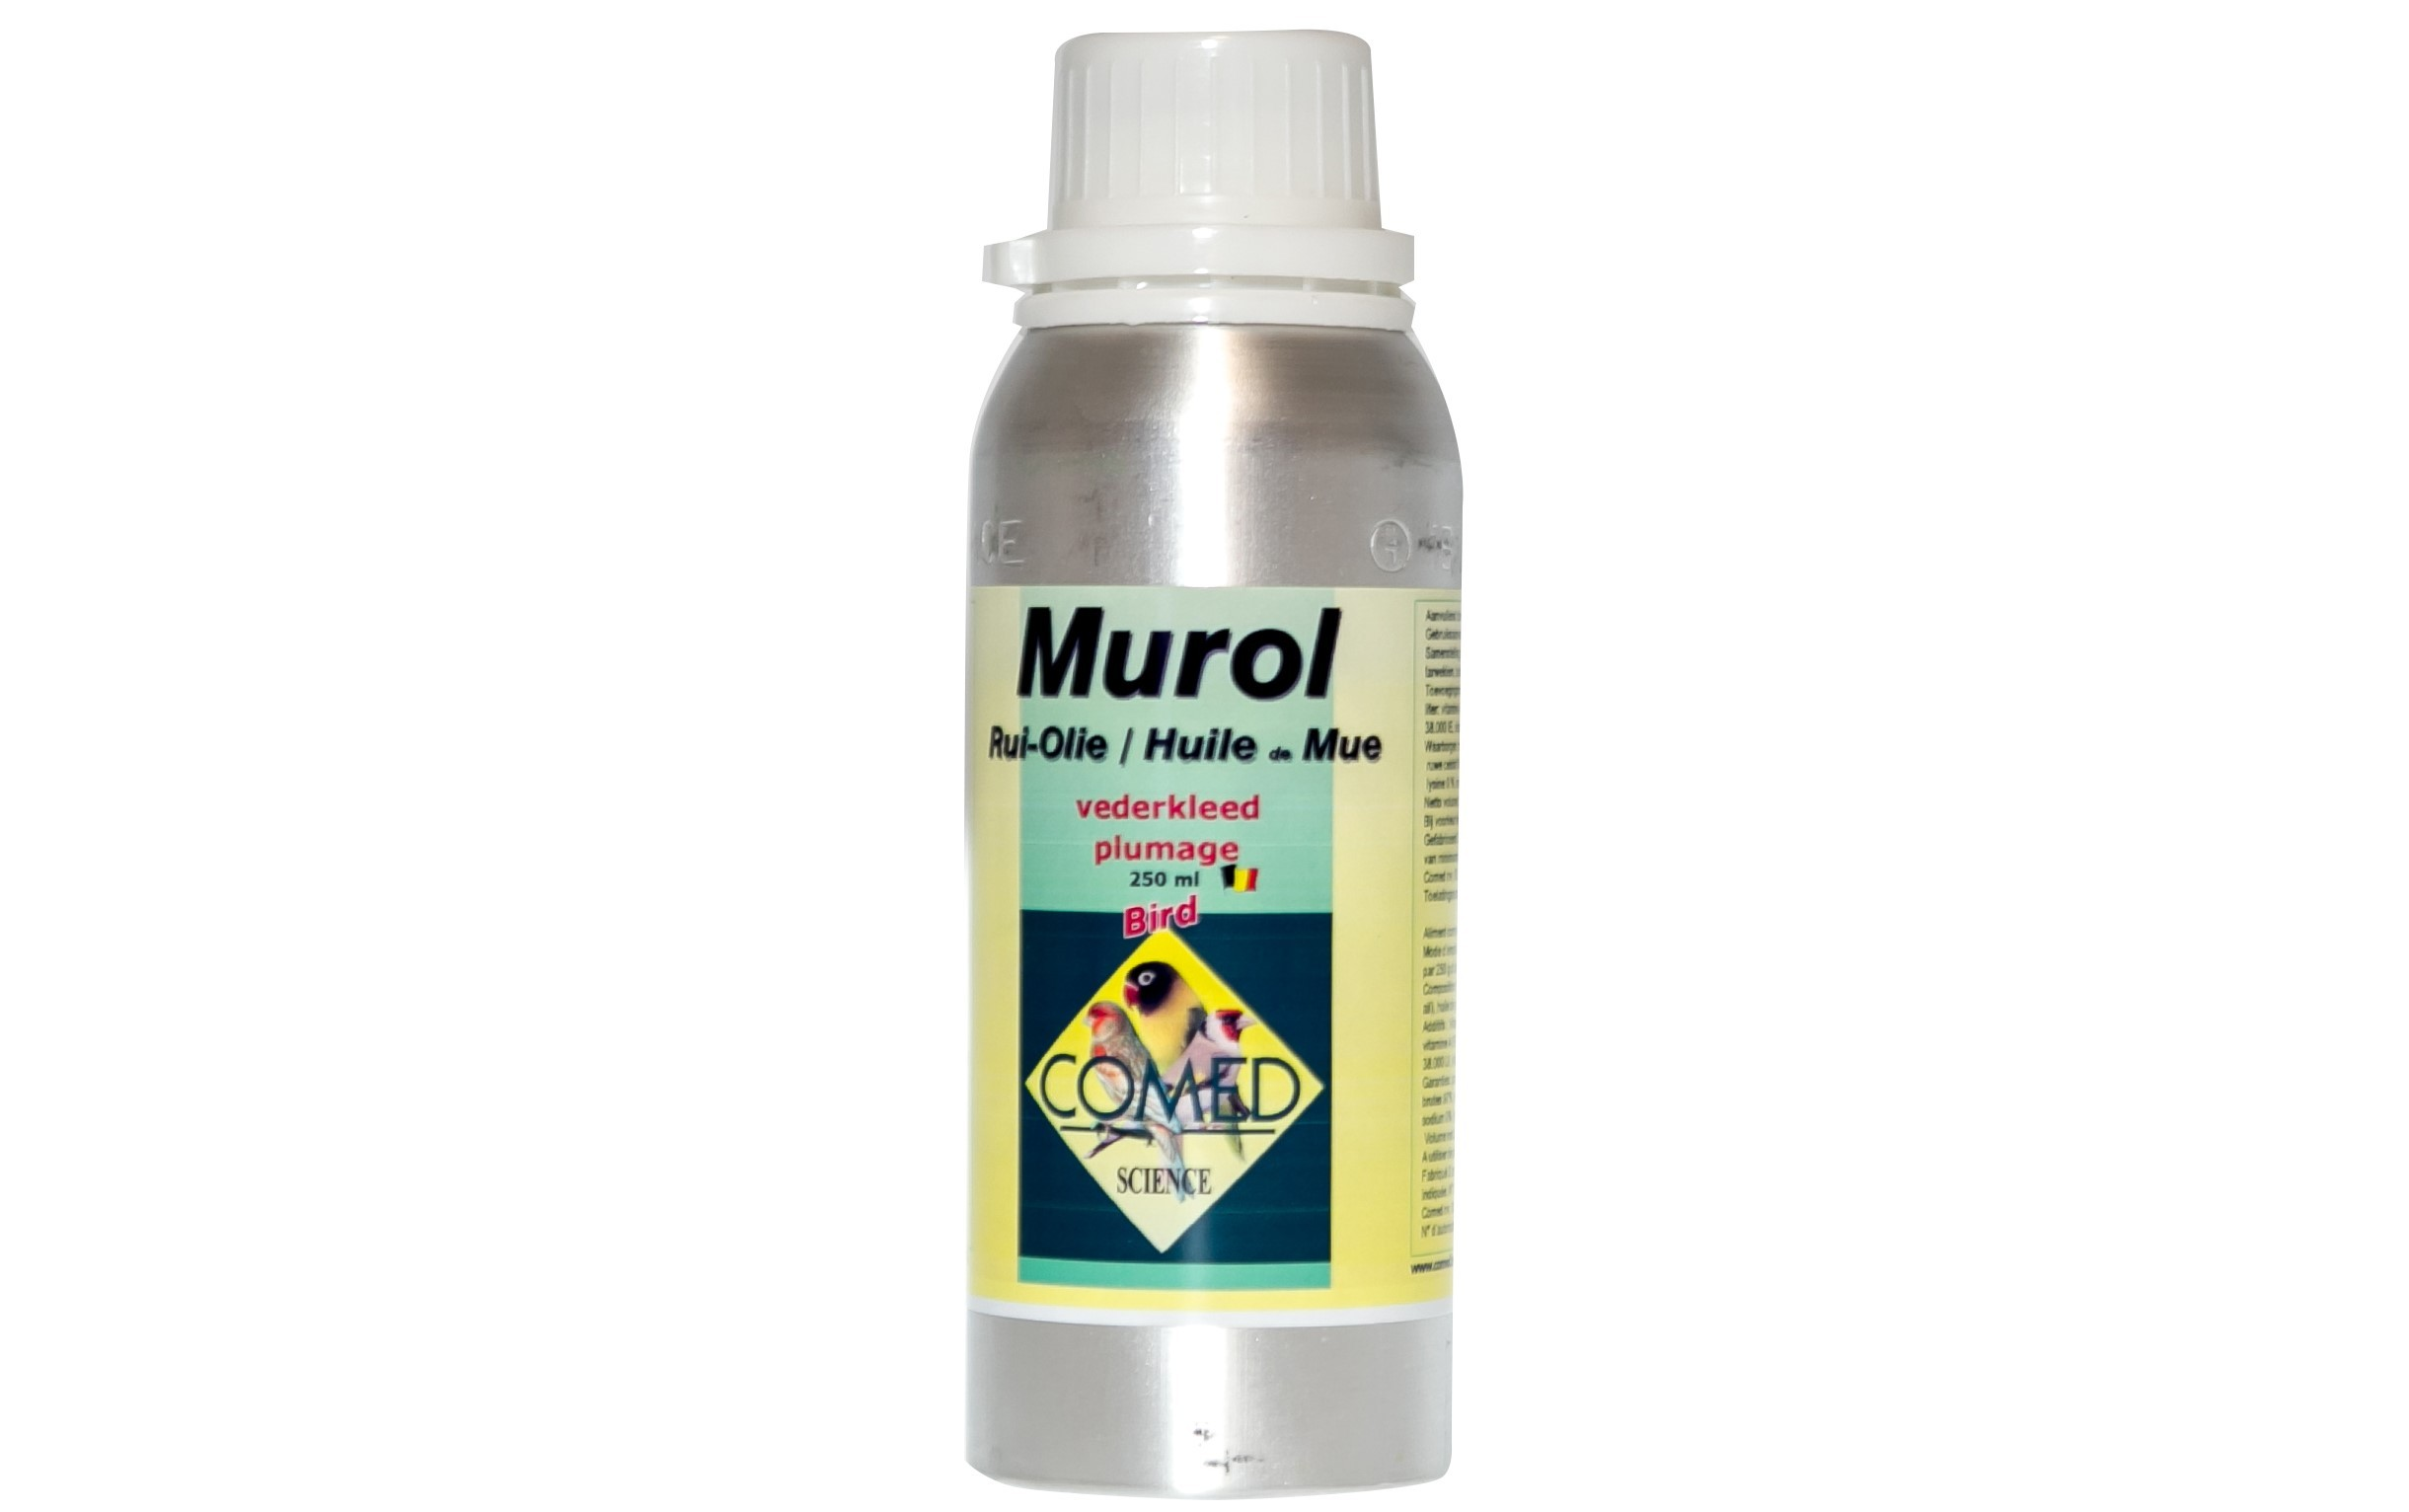 Comed Murol 250 ml